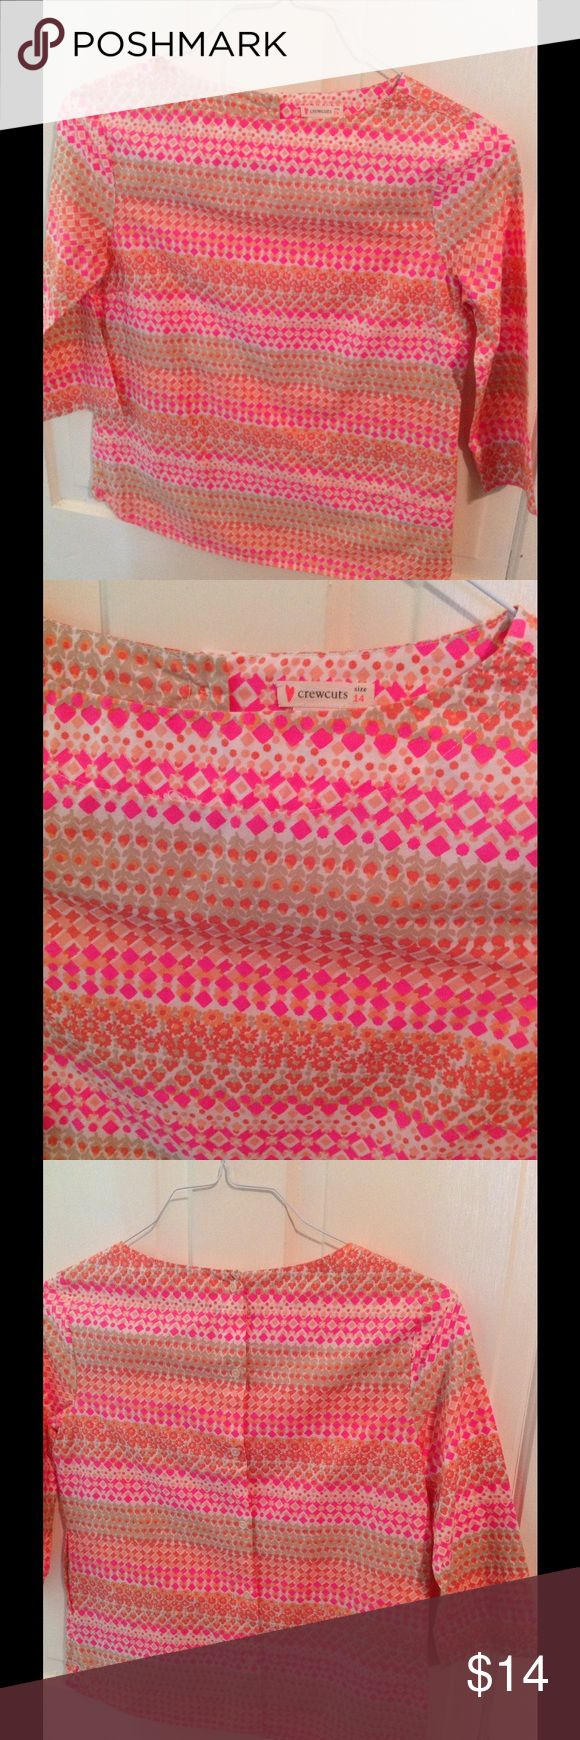 """Girls J. Crew Crewcuts Neon Print Tunic-Top Blouse Manufacturer: Crewcuts 100% cotton Size: 14 Buttons all the way down the back 3/4 sleeves Two front pockets Neon- colored print Condition: Pre-owned in good condition. Measures:  21"""" base of neck to hem J. Crew Shirts & Tops Blouses"""